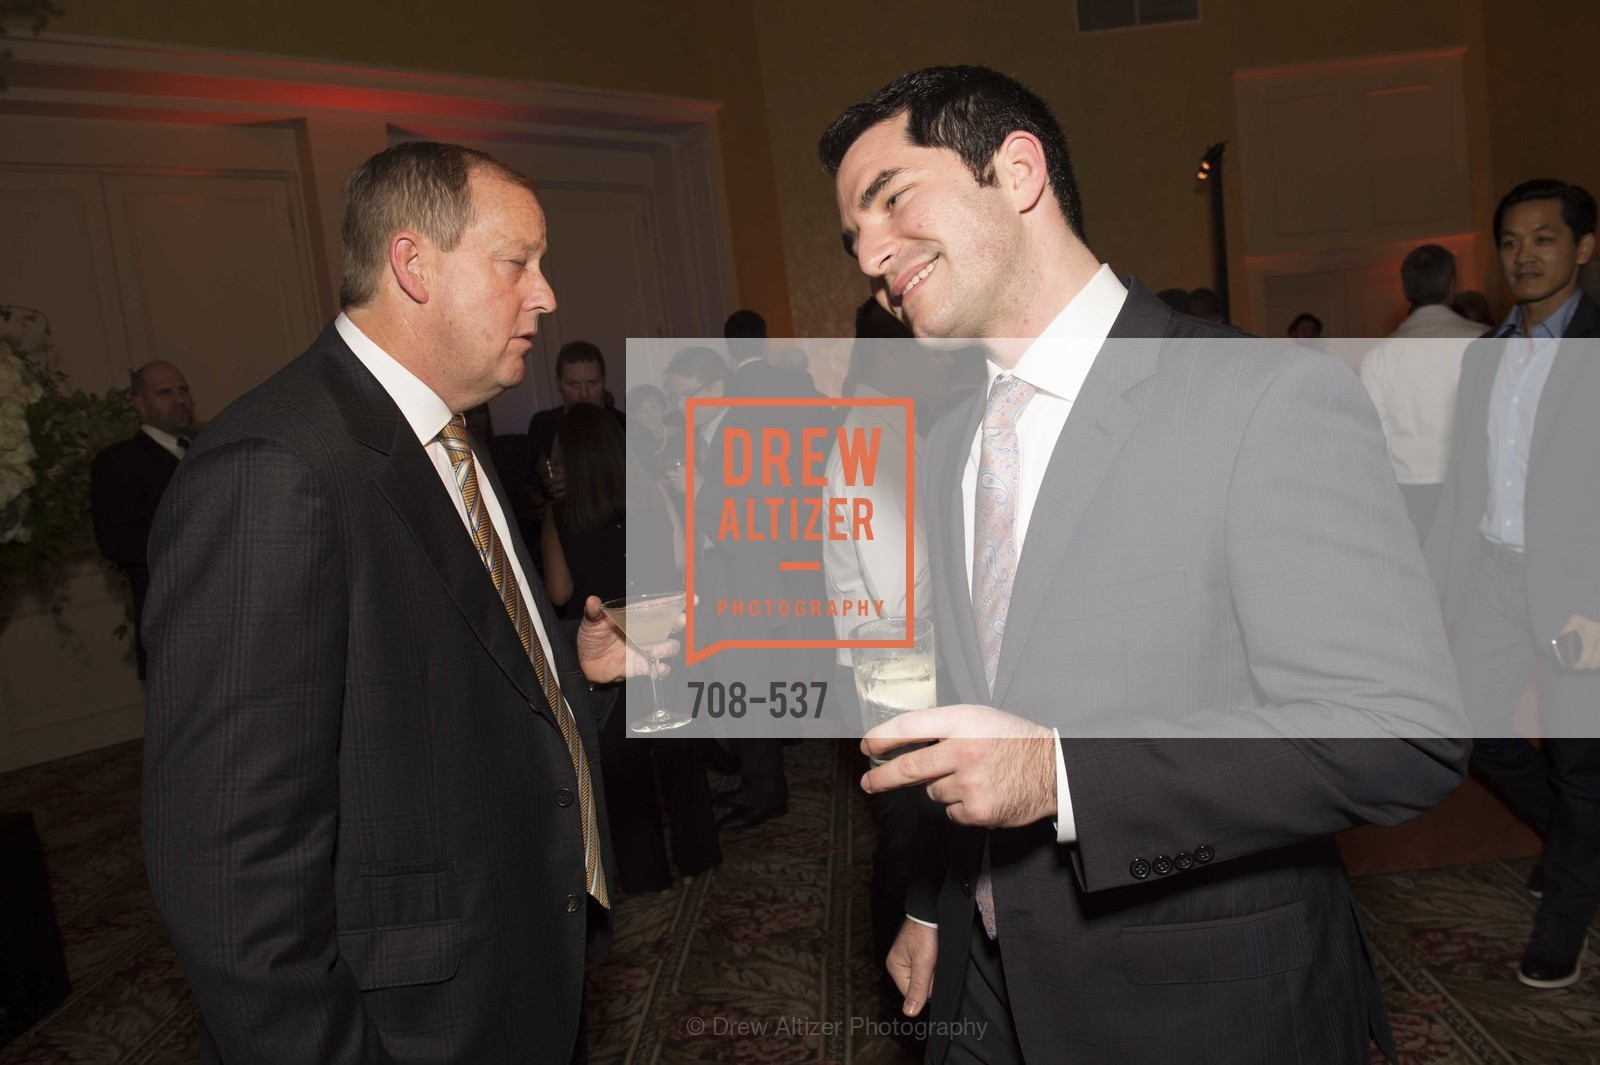 Michael Rosenfeld, Sam Aperbach, TOP OF THE MARK'S 75TH Anniversary Party, US, November 6th, 2014,Drew Altizer, Drew Altizer Photography, full-service agency, private events, San Francisco photographer, photographer california